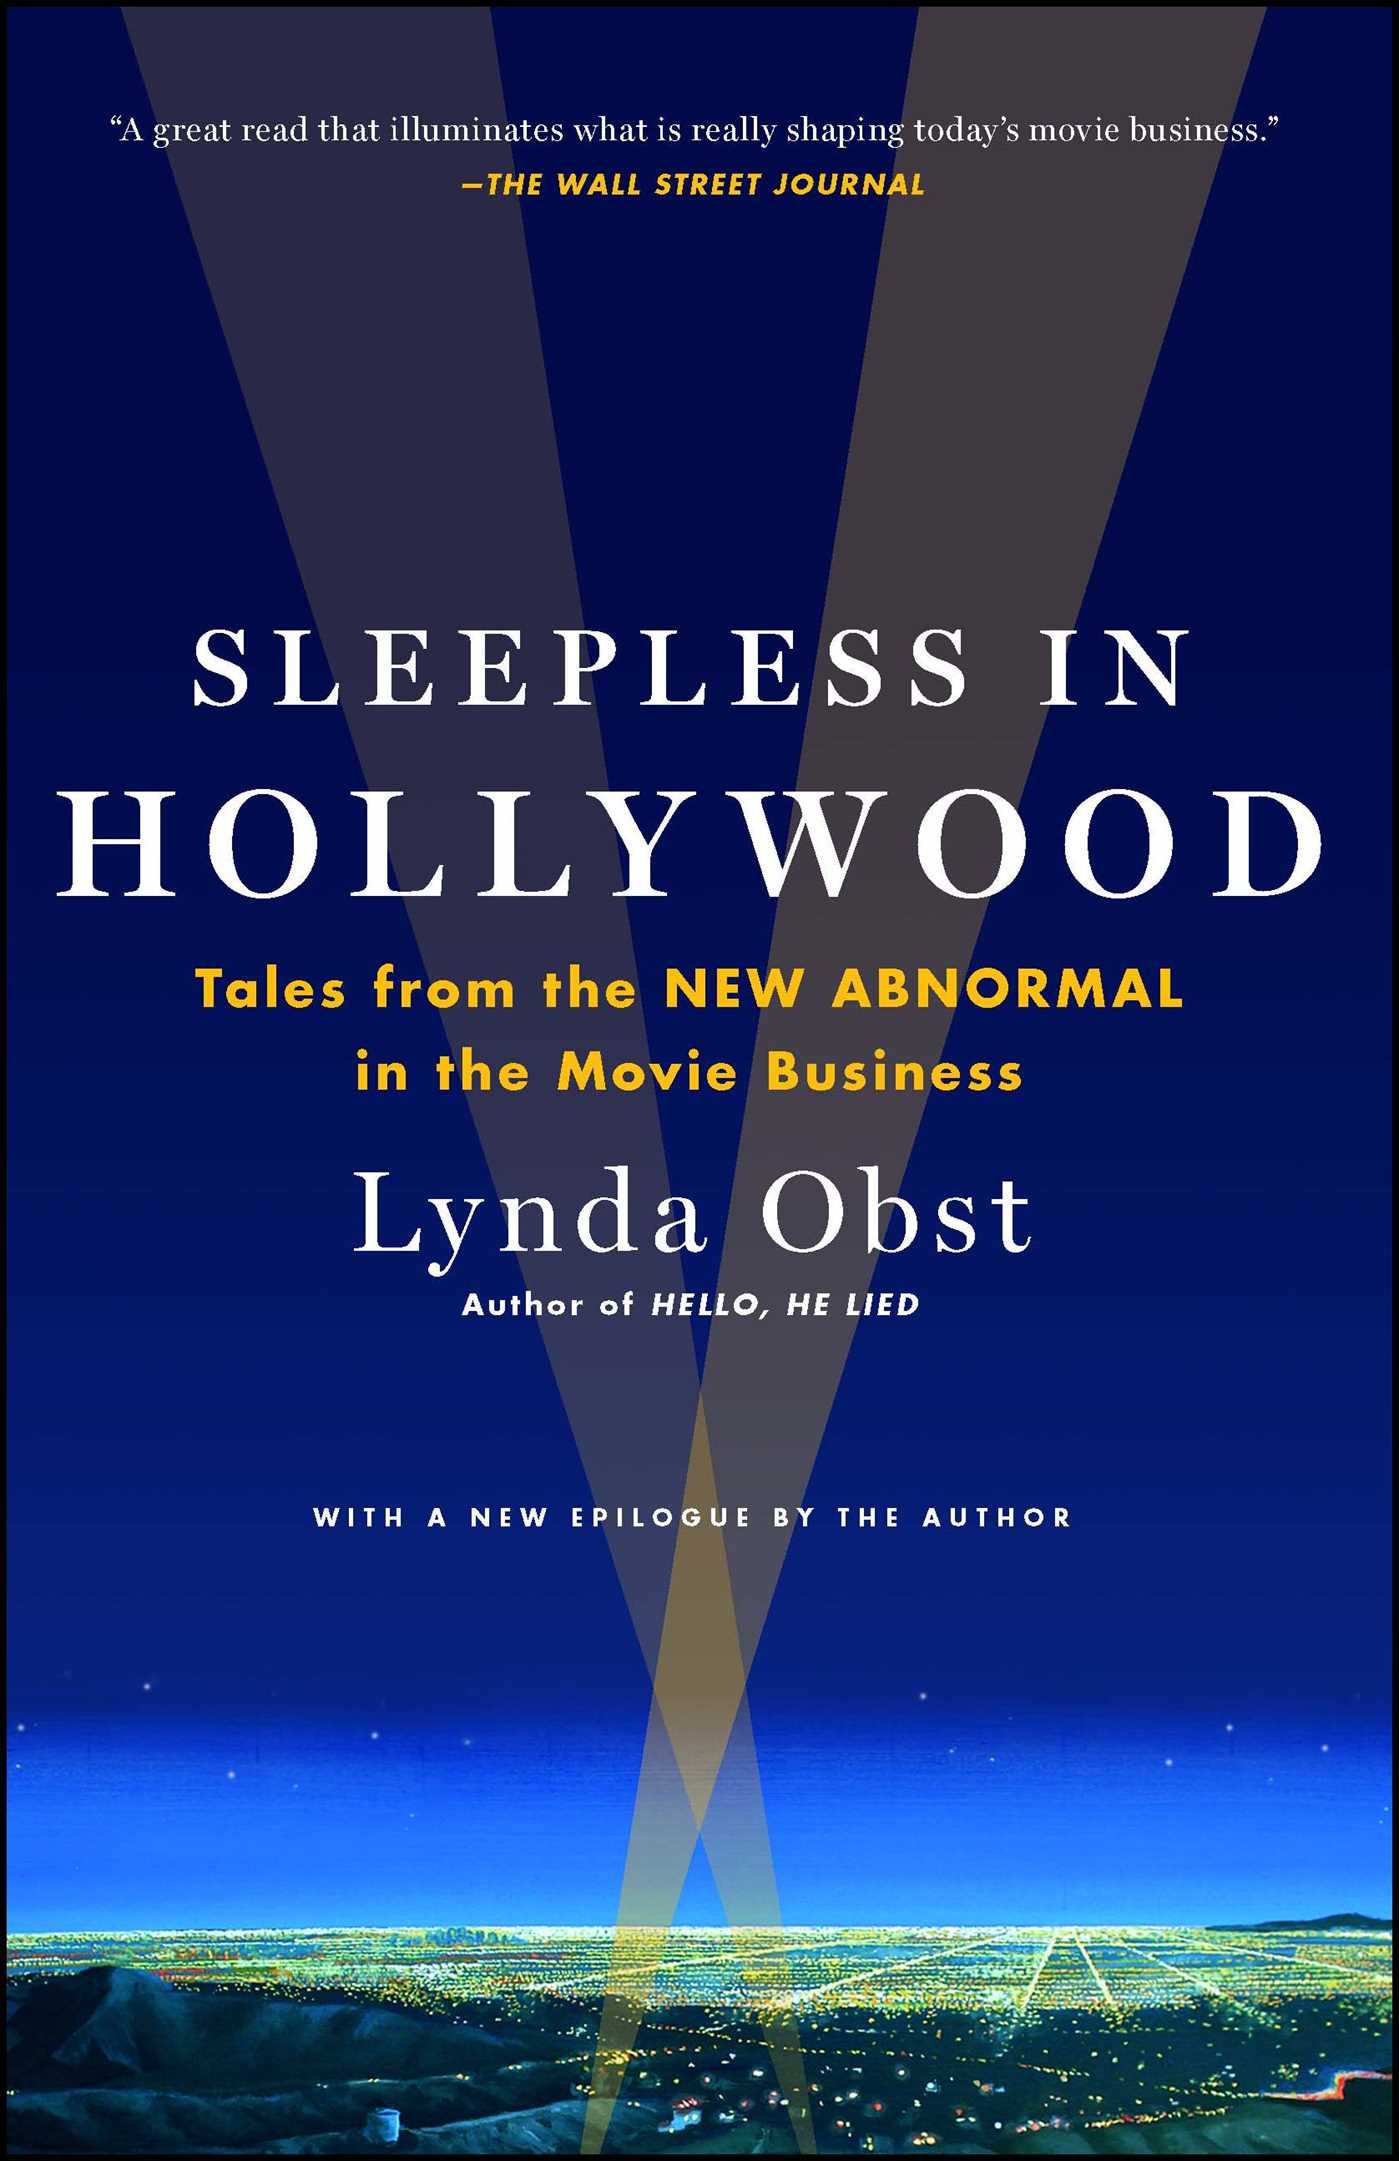 Sleepless-in-hollywood-9781476727769_hr